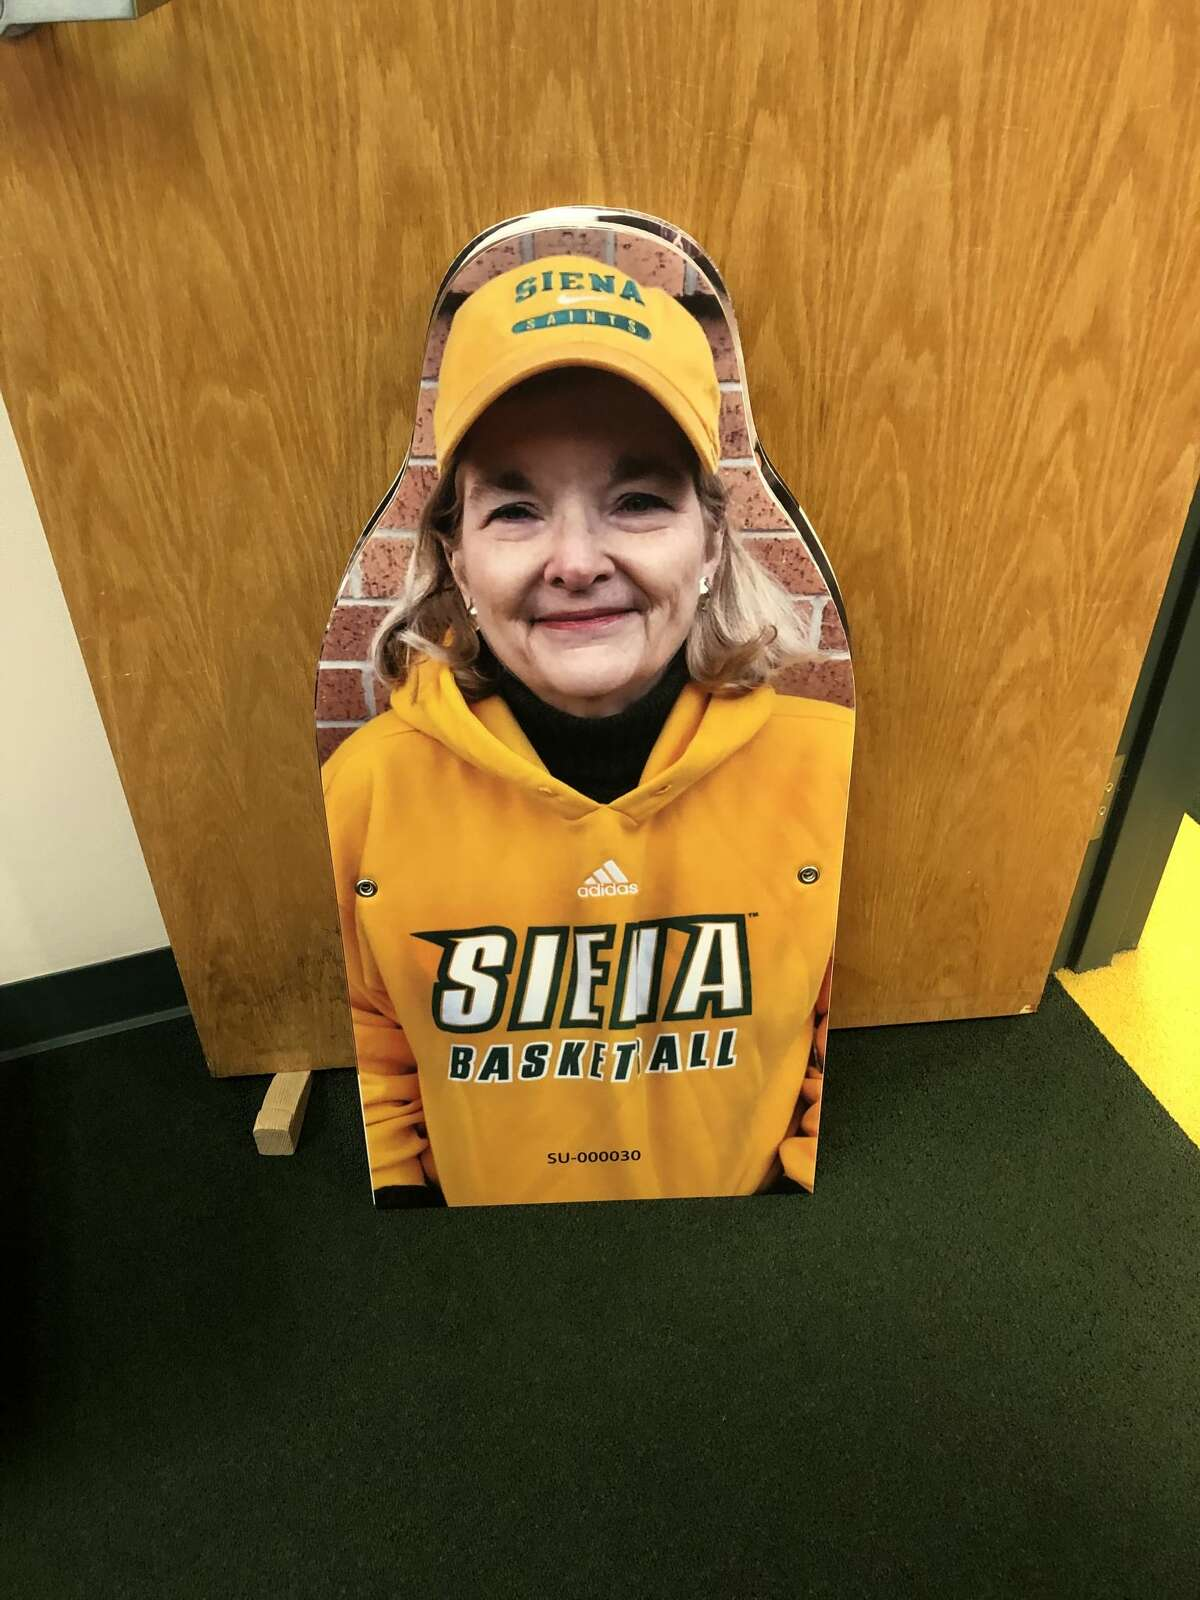 Season-ticket holder Patti Bayly isn't optimistic fans will be allowed this season, but her fan cutout will be attending every game at Alumni Recreation Center. (Photo courtesy of Patti Bayly)